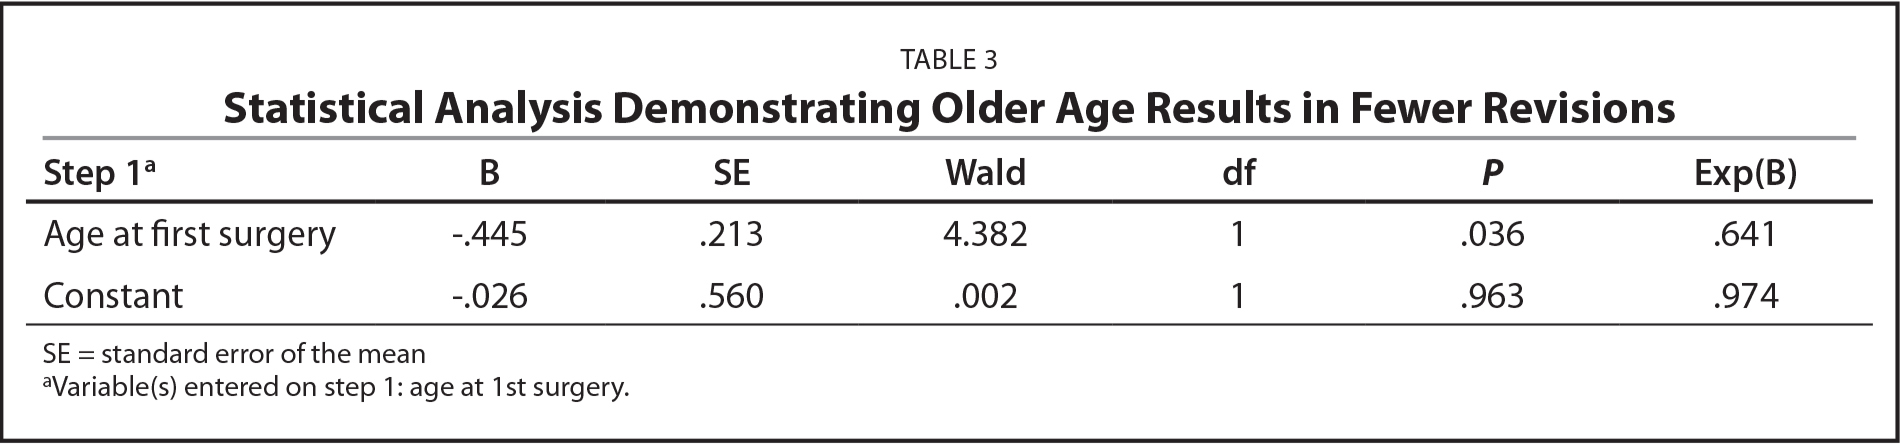 Statistical Analysis Demonstrating Older Age Results in Fewer Revisions